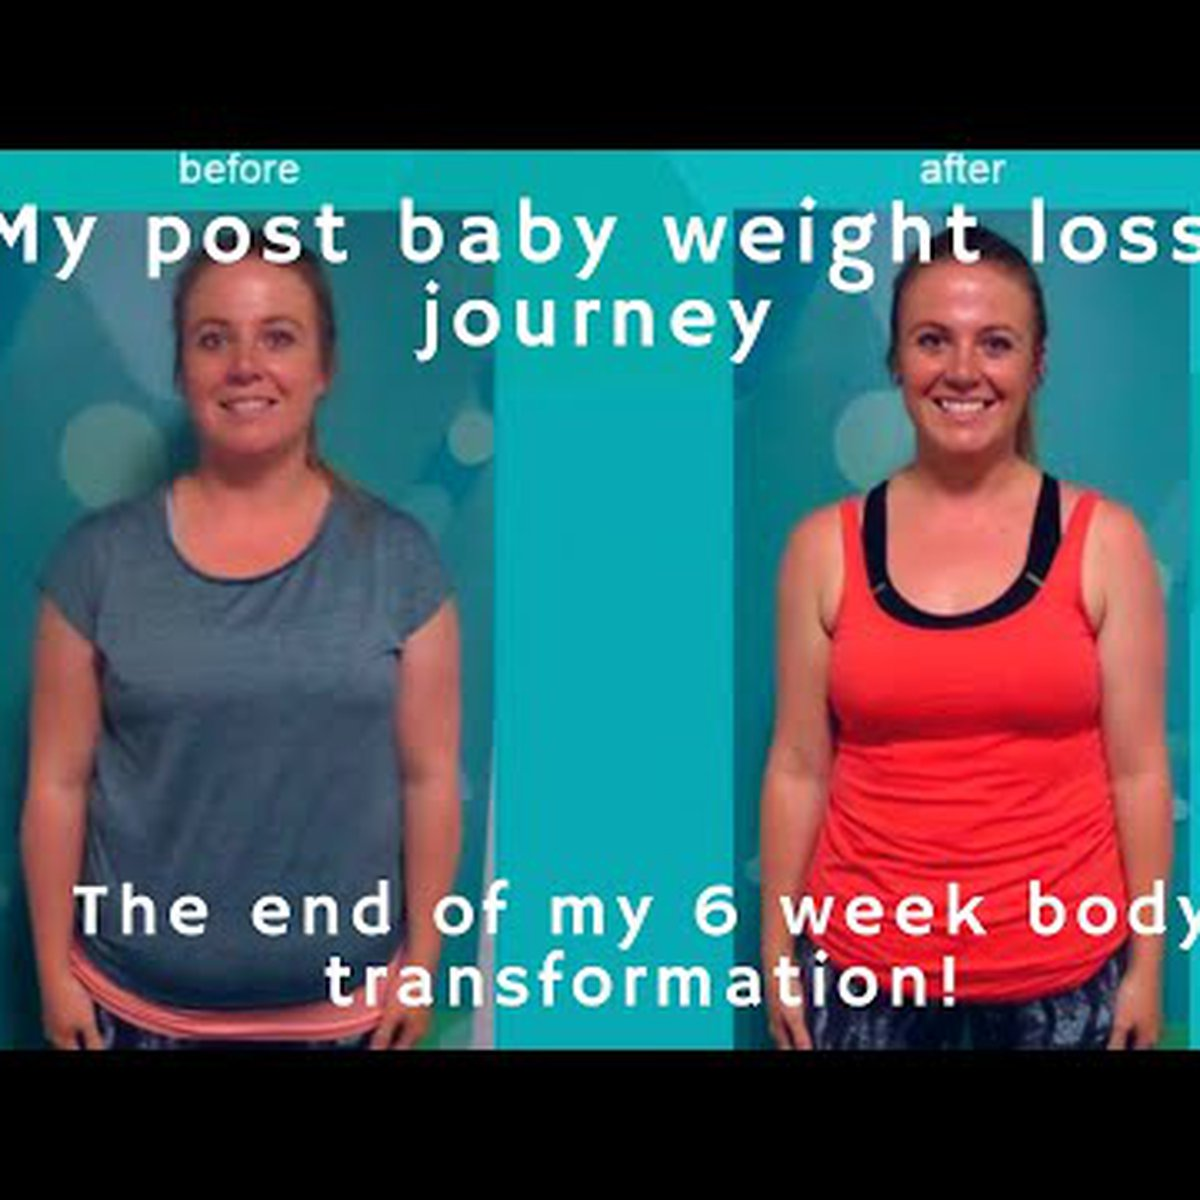 My post baby weight loss journey | the end of my 6 week transformation